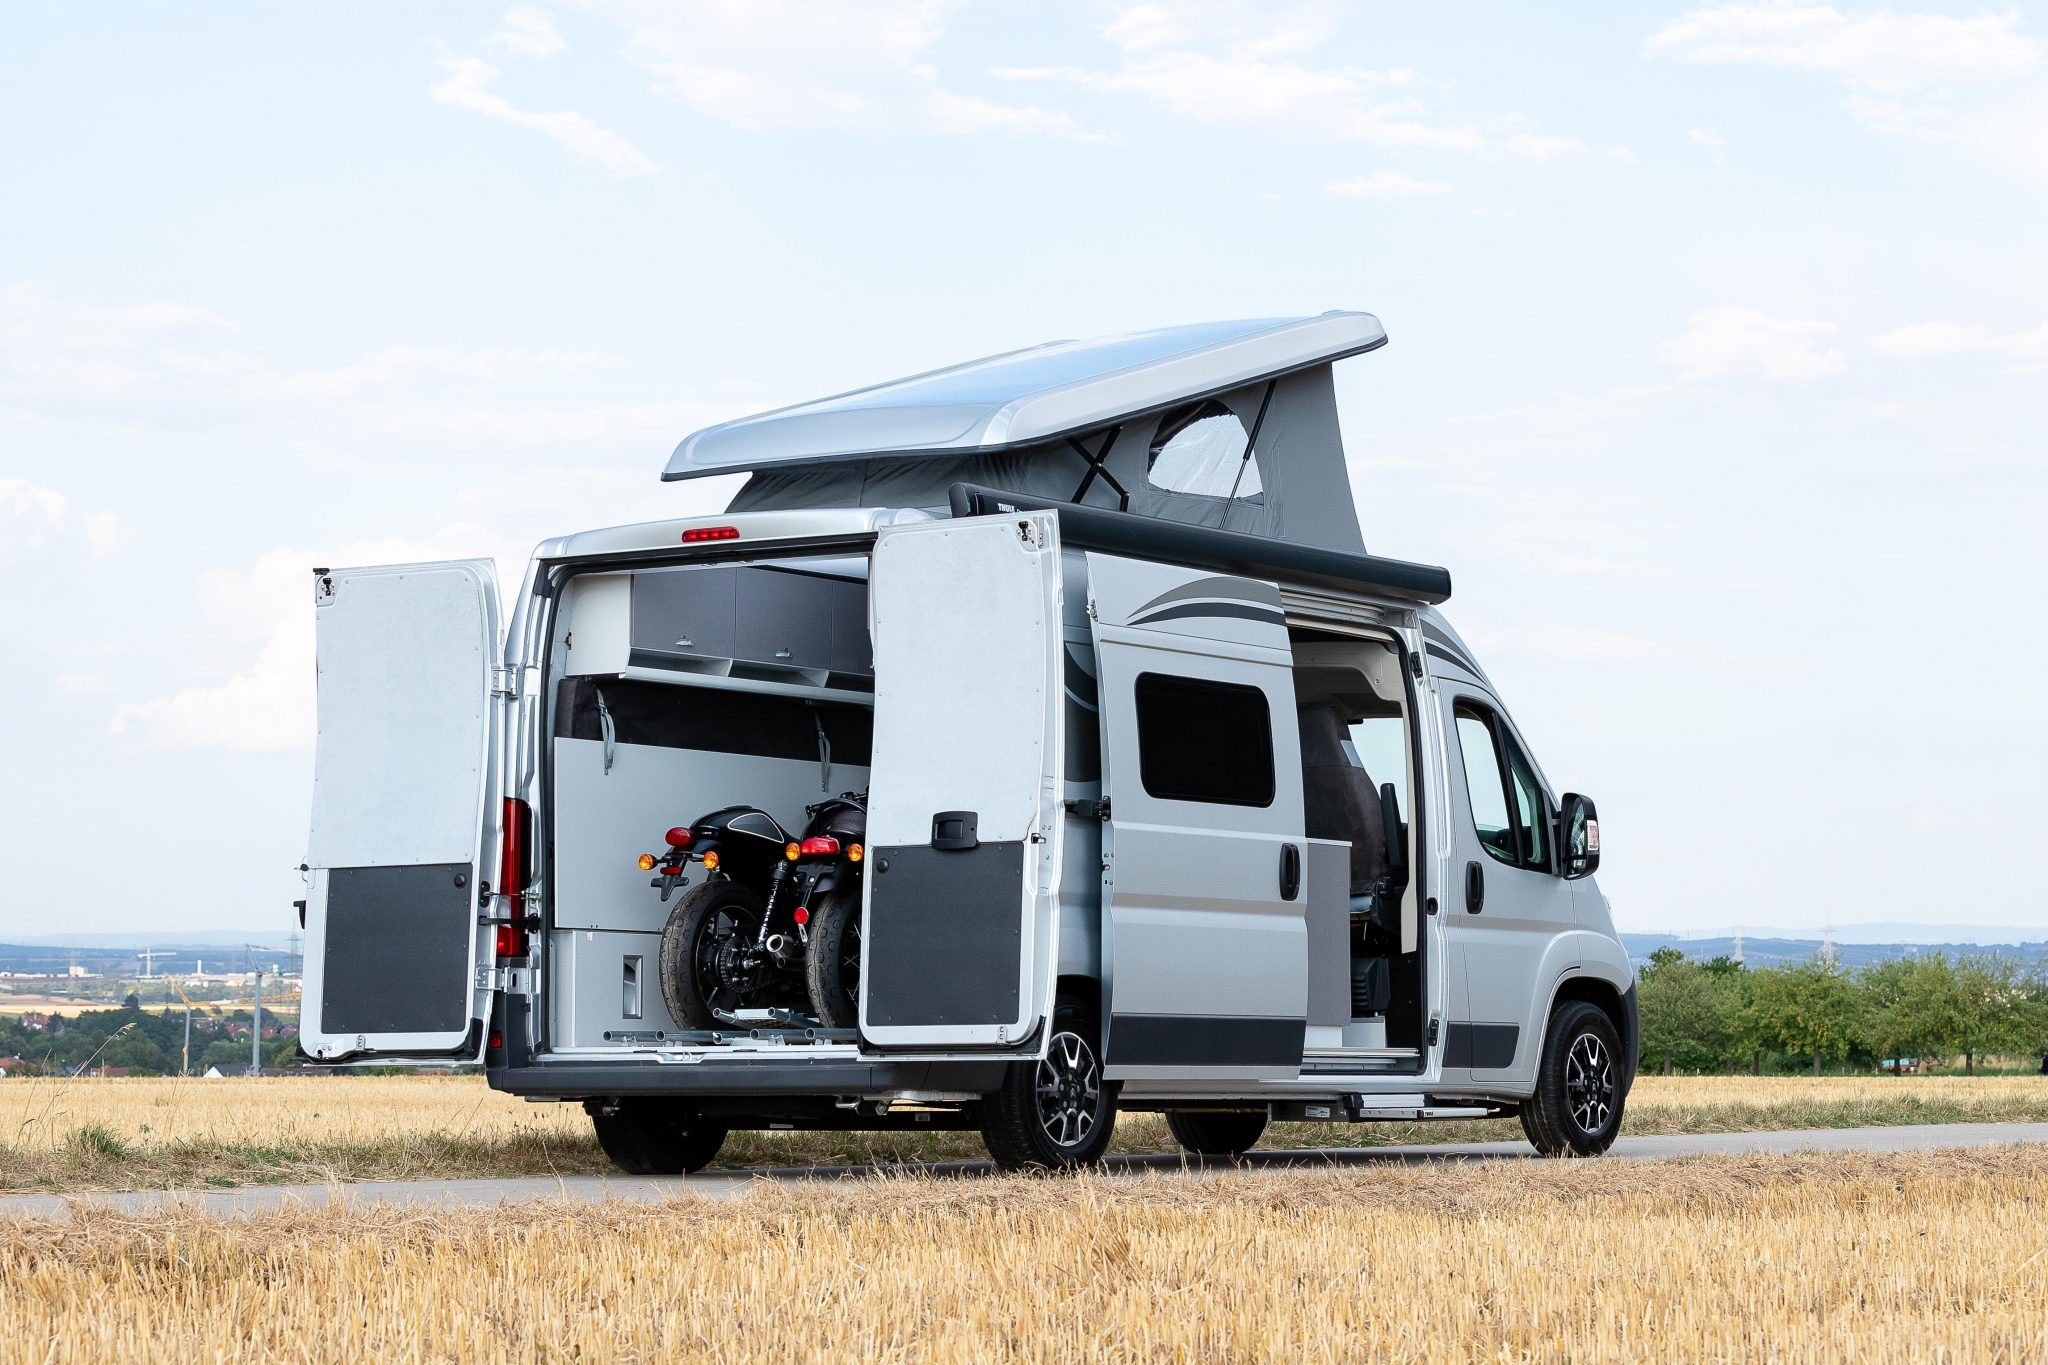 The Citroën Jumper Camper Van For Bikers - Outbound Living